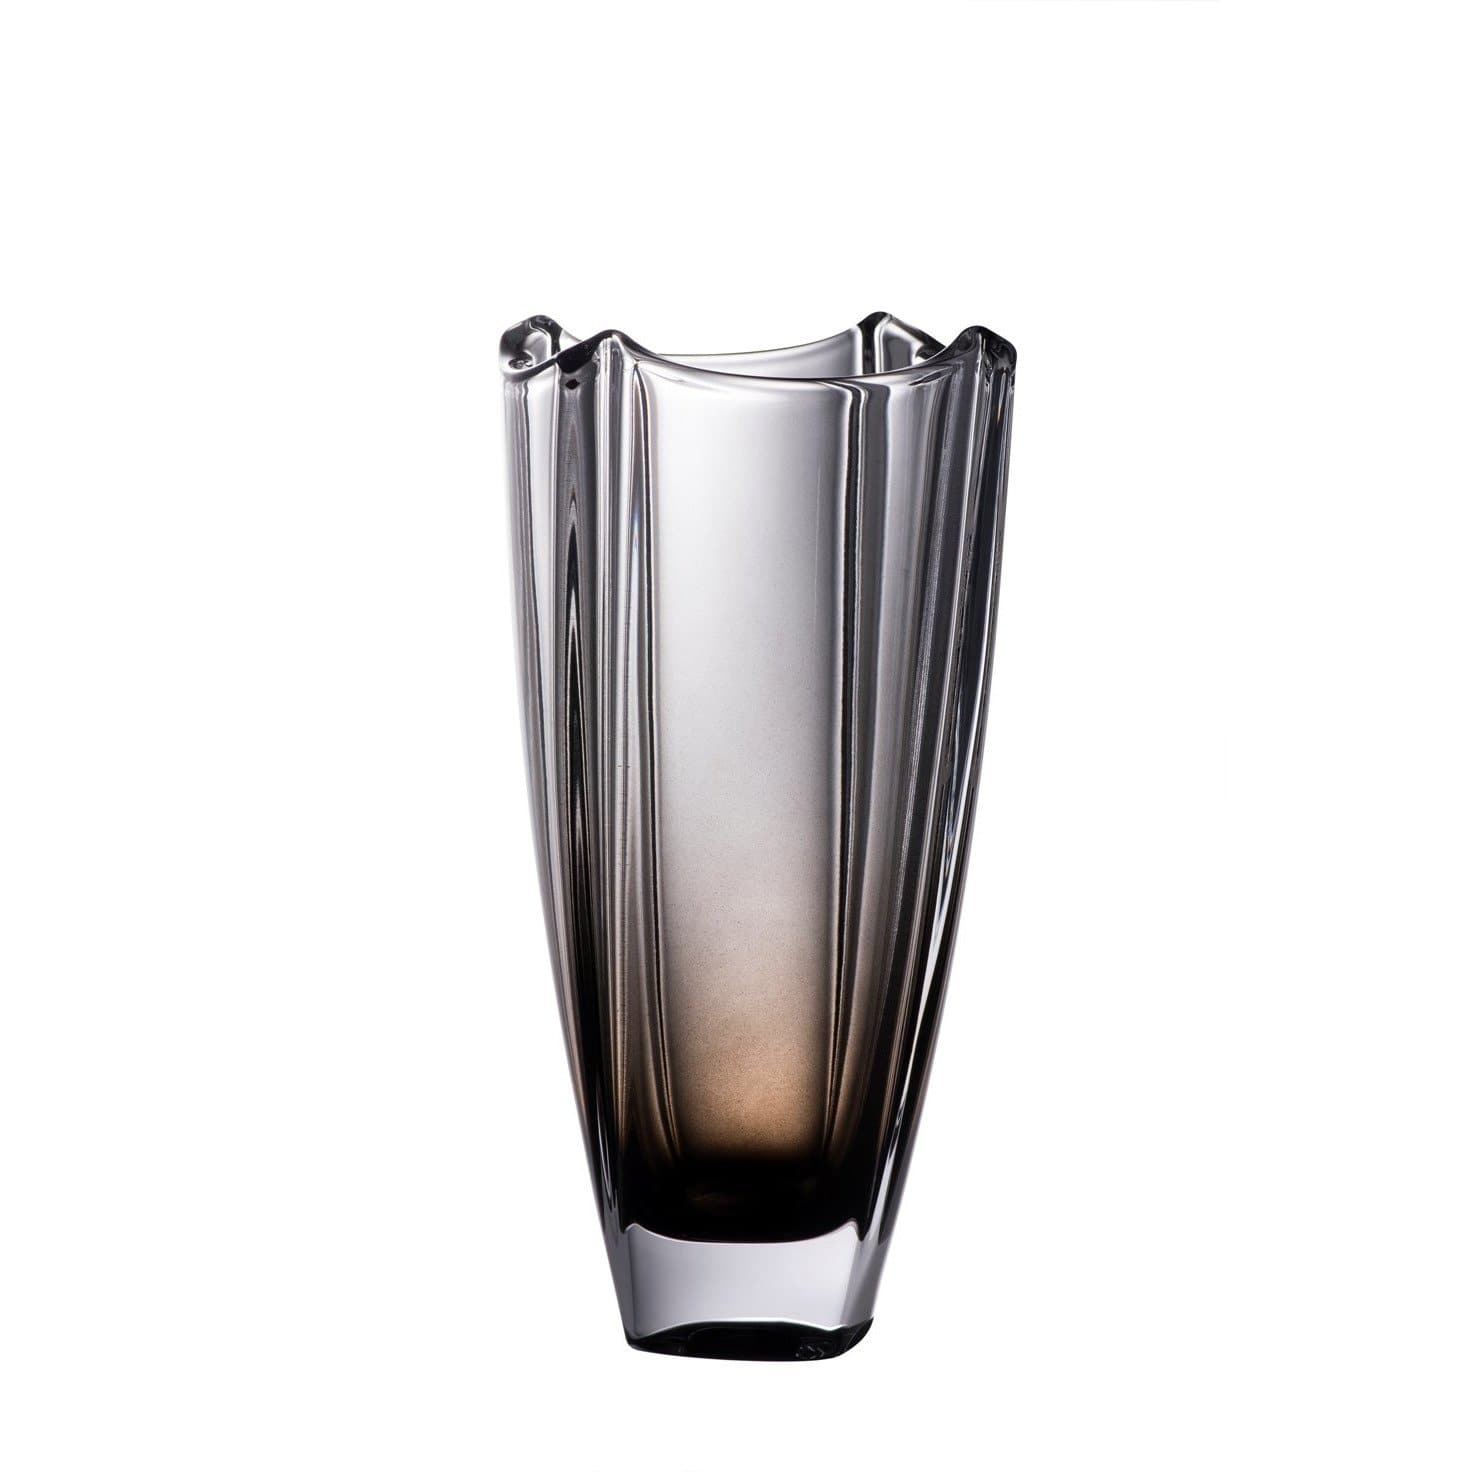 "Onyx Dune 10"" Square Vase - Galway Irish Crystal"